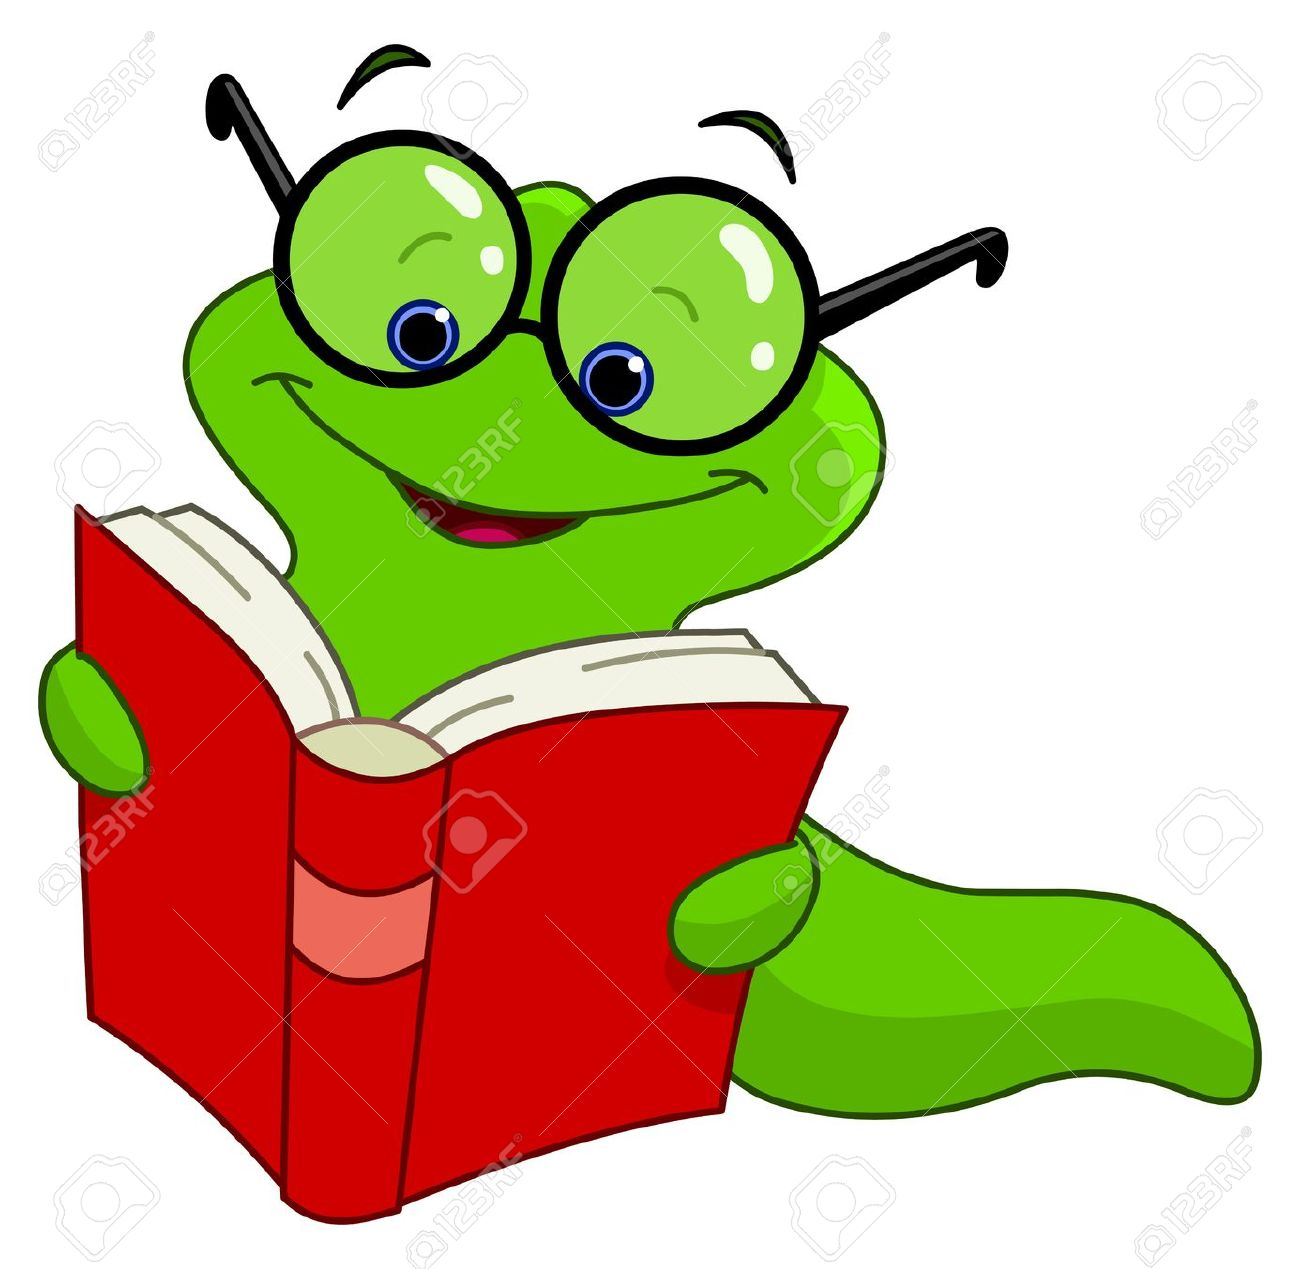 Reading worm clipart picture Inch Worm Clipart | Free download best Inch Worm Clipart on ... picture